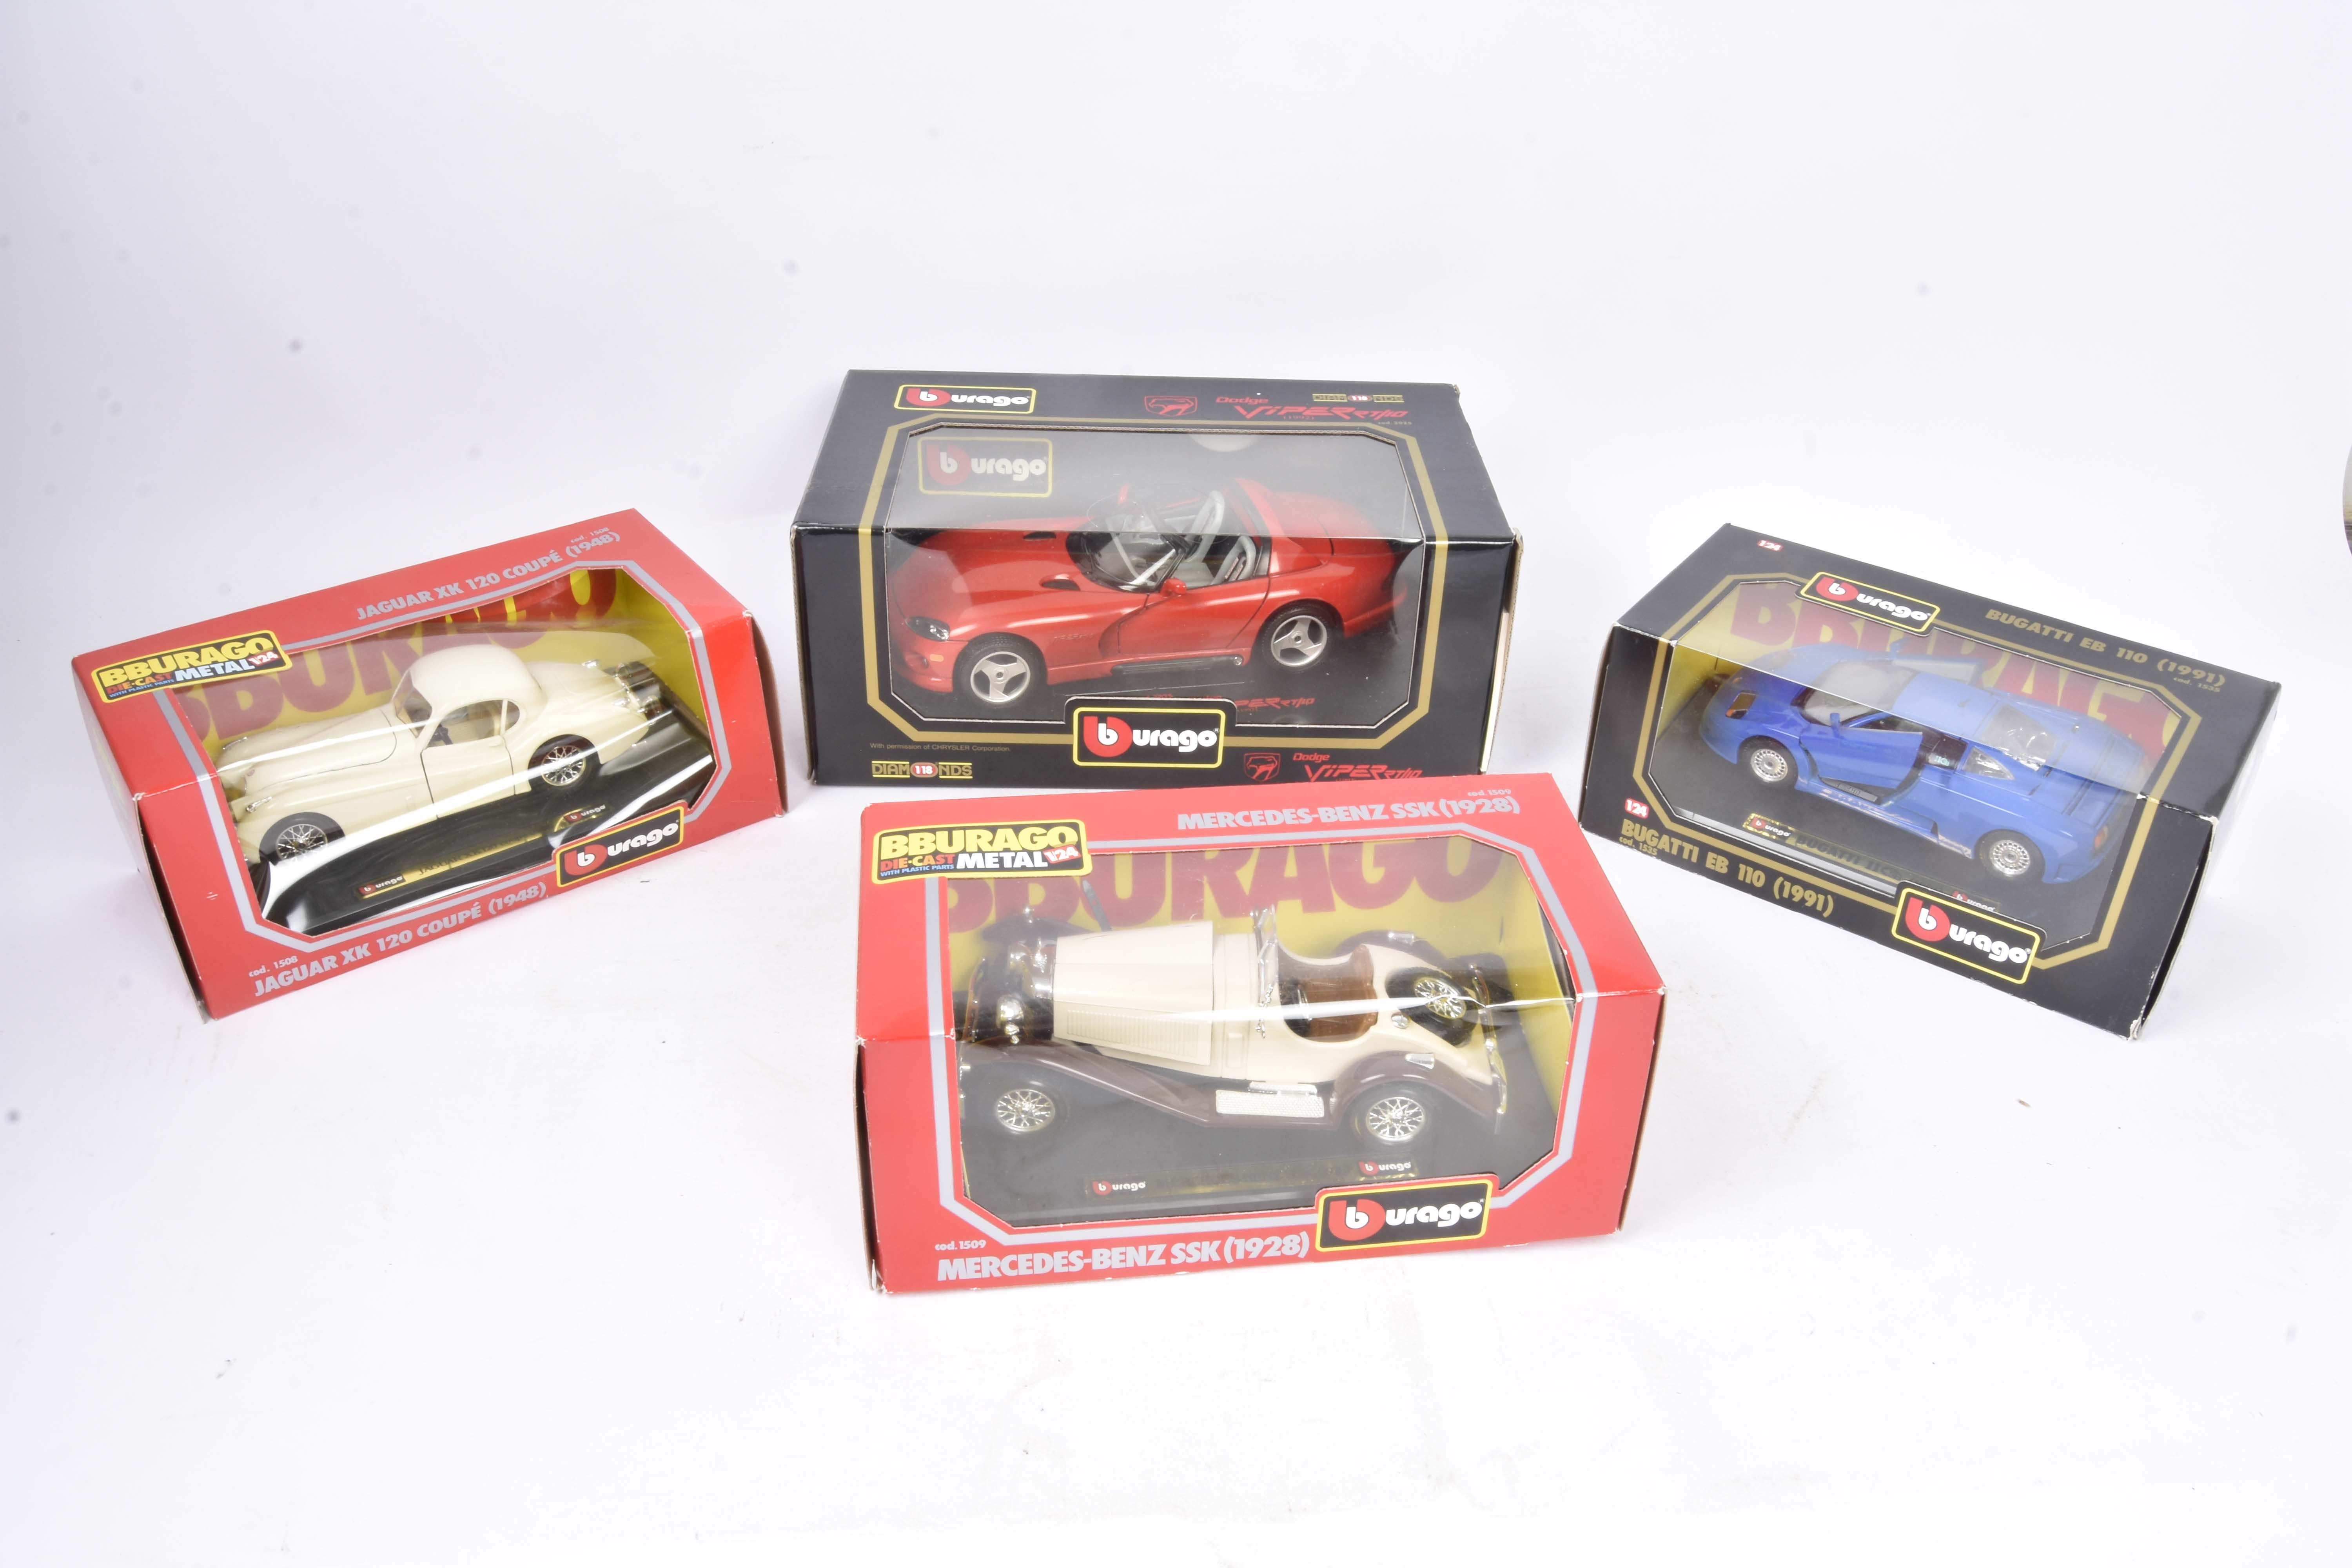 Burago and Revell 1:18/1:24 Scale Vehicles, a boxed collection of private vehicles including 1:18